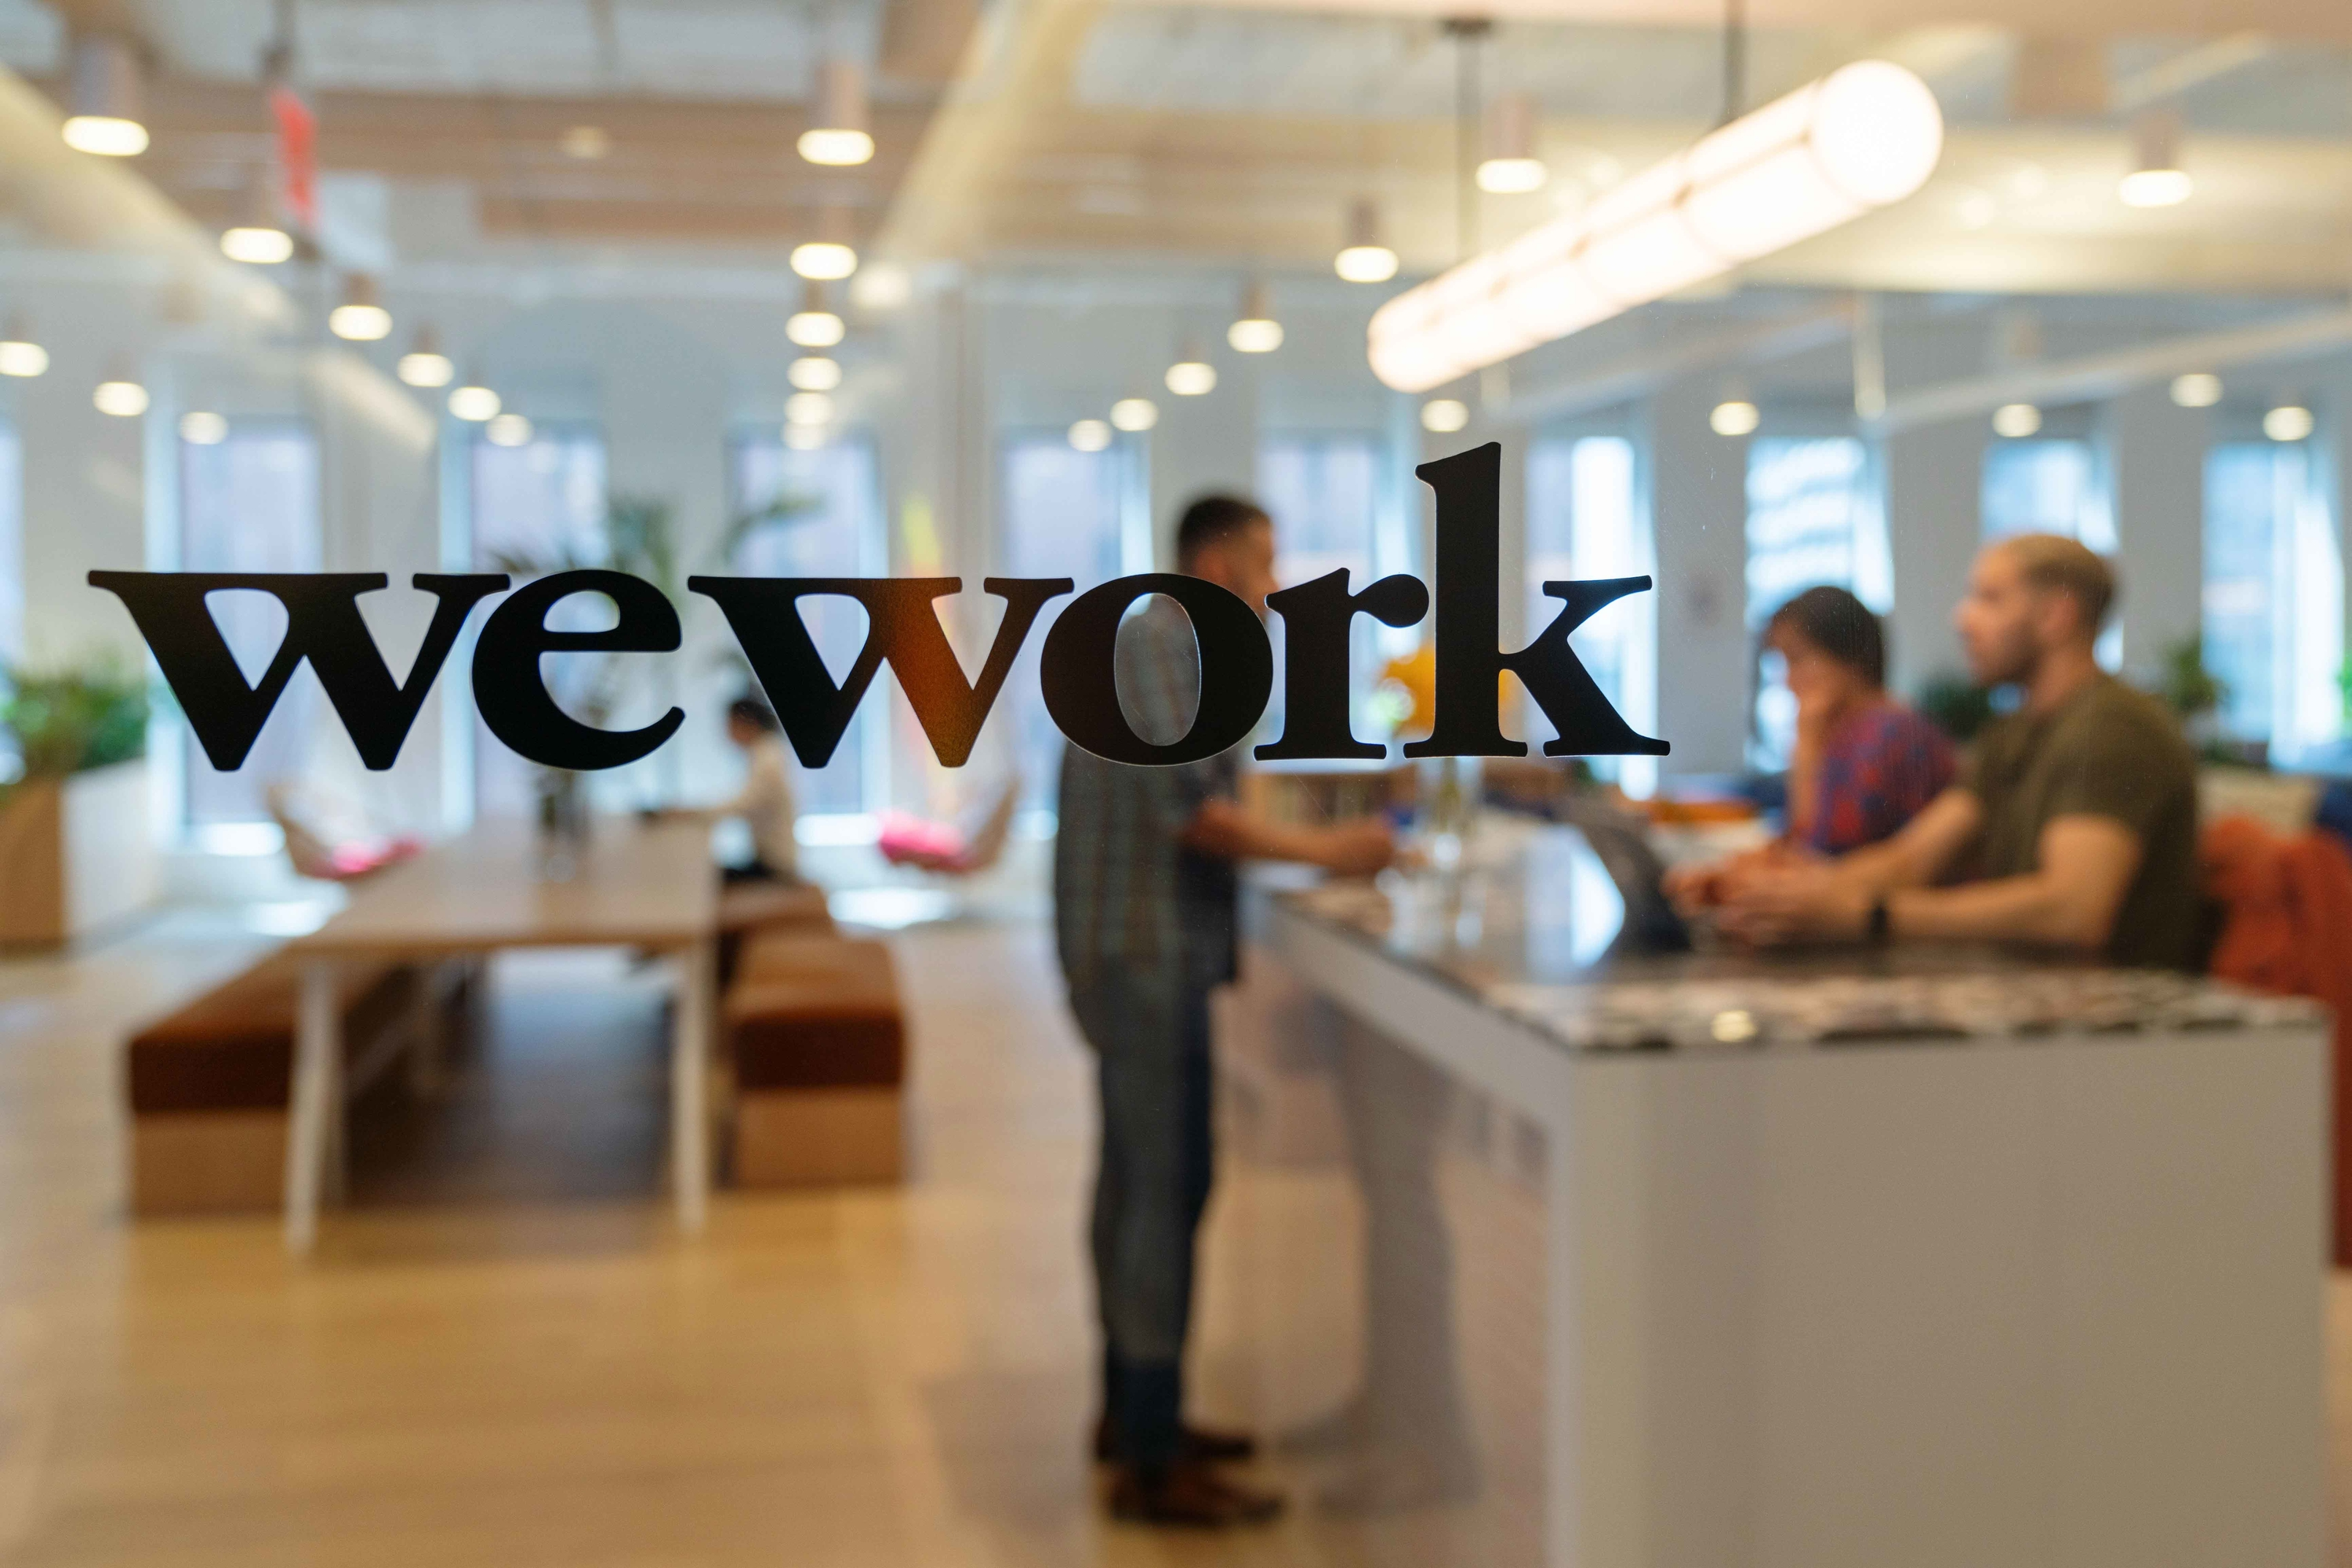 WeWork Ashton Kutcher Martin Scorsese Creator Awards NBC Universal television tv show pitch Uber IPO initial public offering Summer Camp Bloomberg